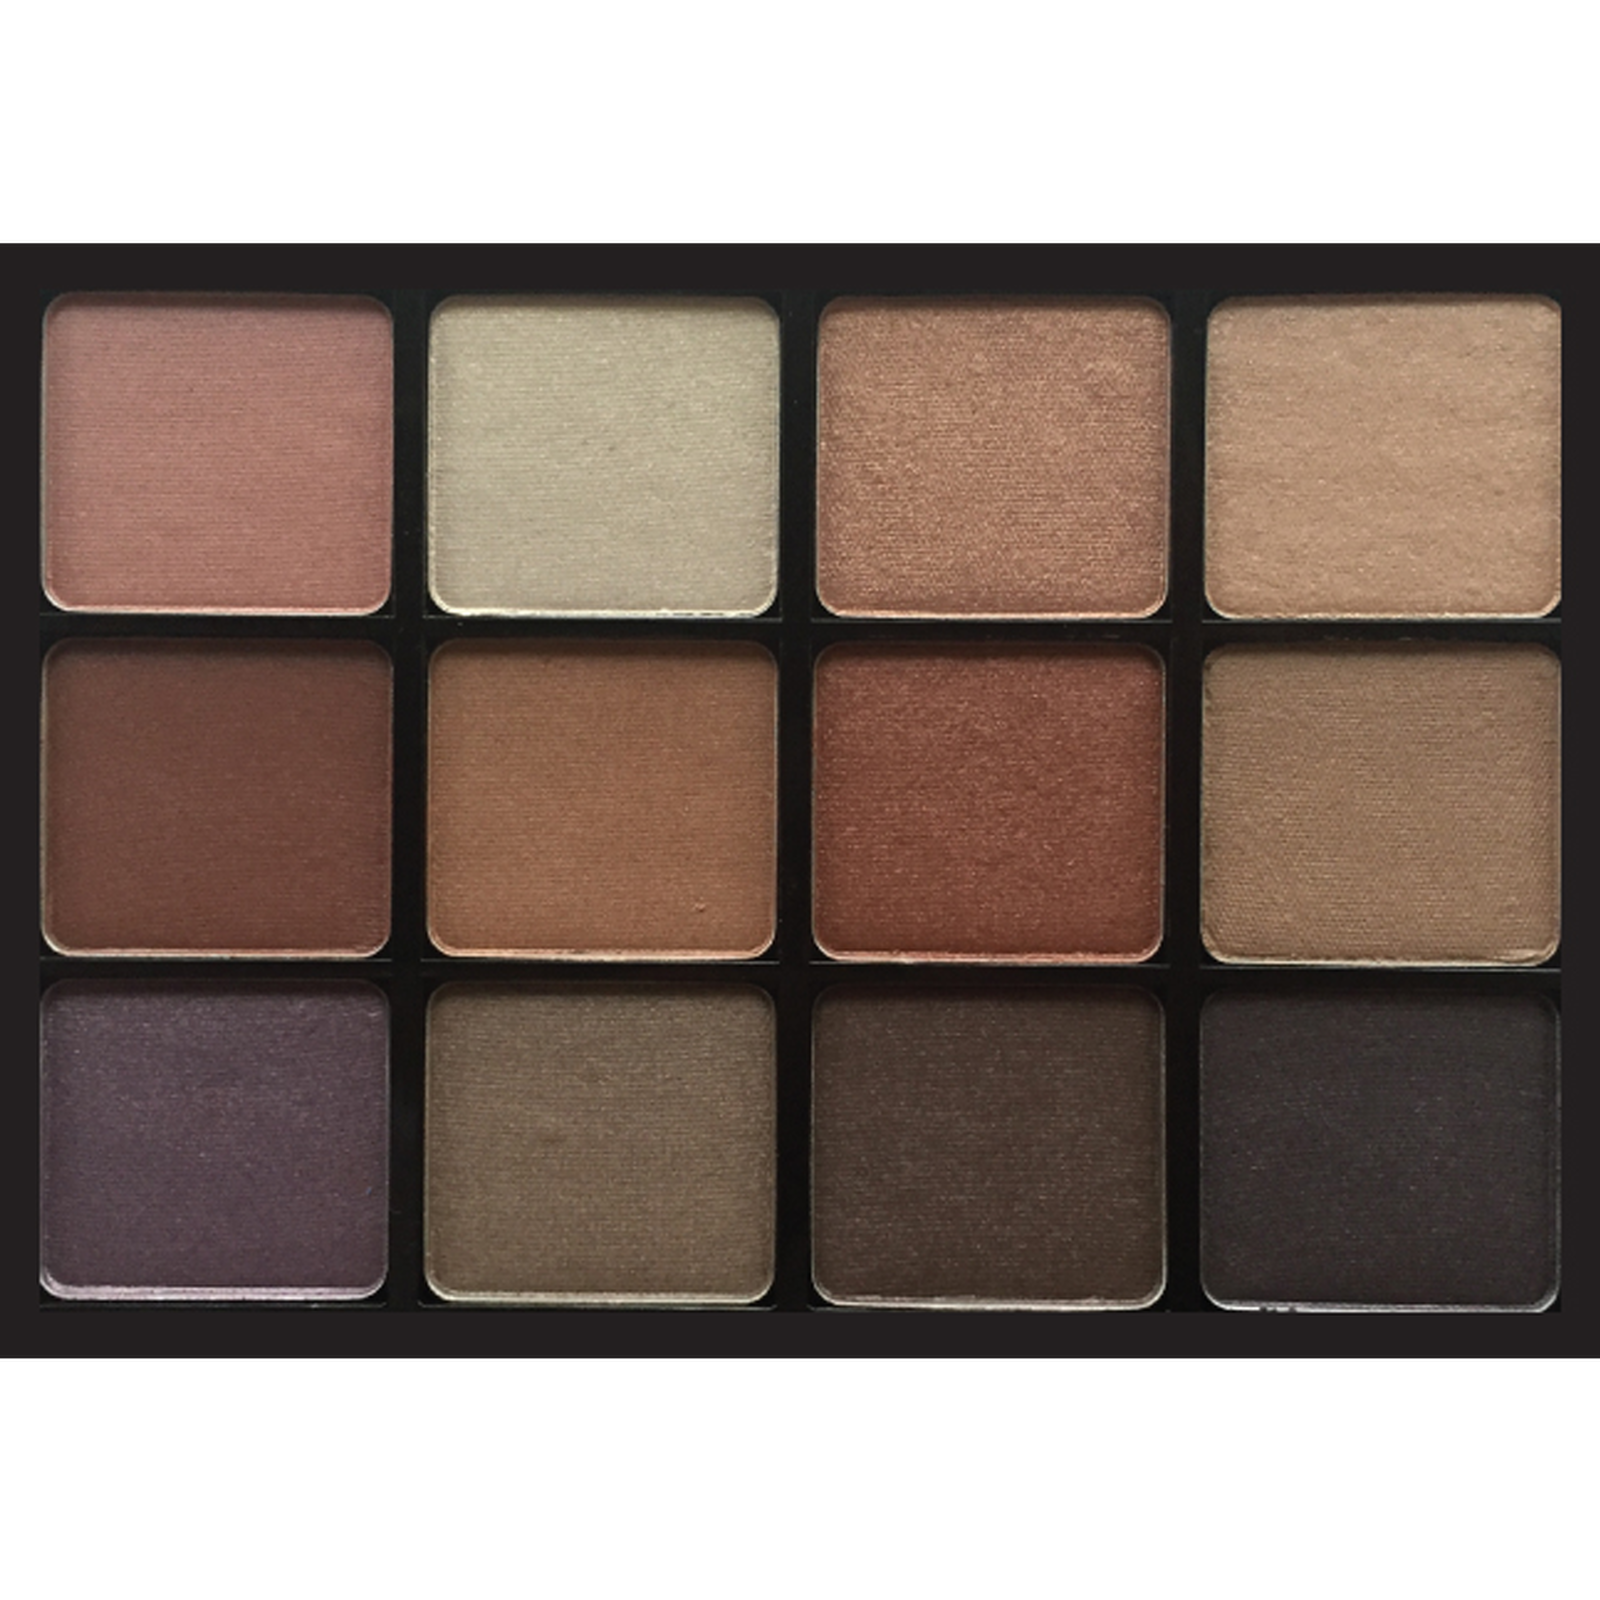 11101c1e1dad4f Viseart Eyeshadow Palettes